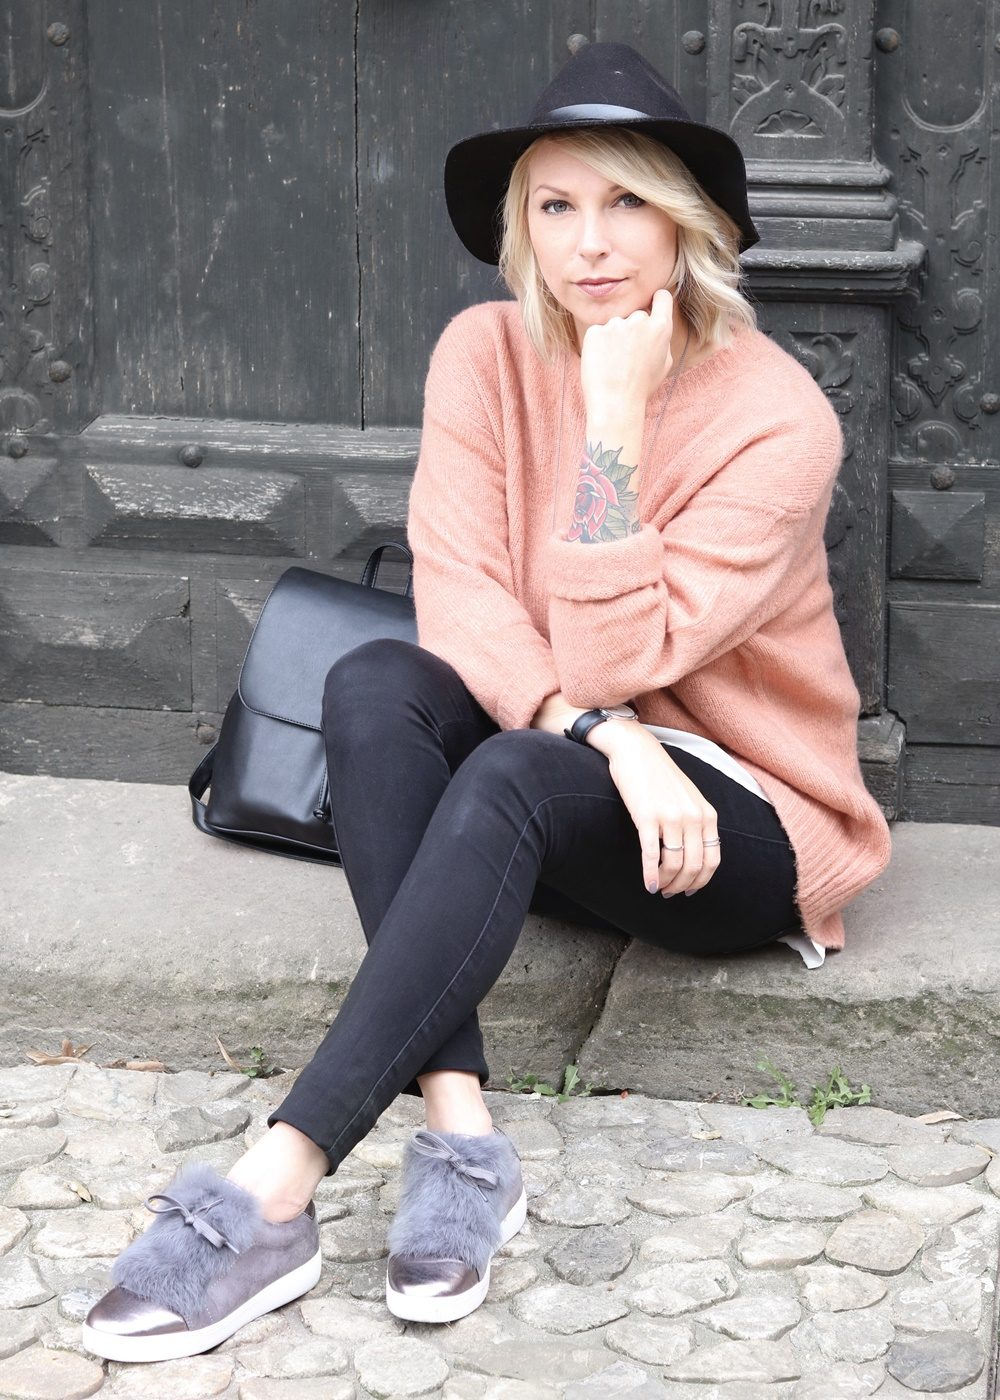 fashionblogger-outfit-rosa-strickpullover-zara-graue-sneaker-fell-rucksack-hut-jeans-10